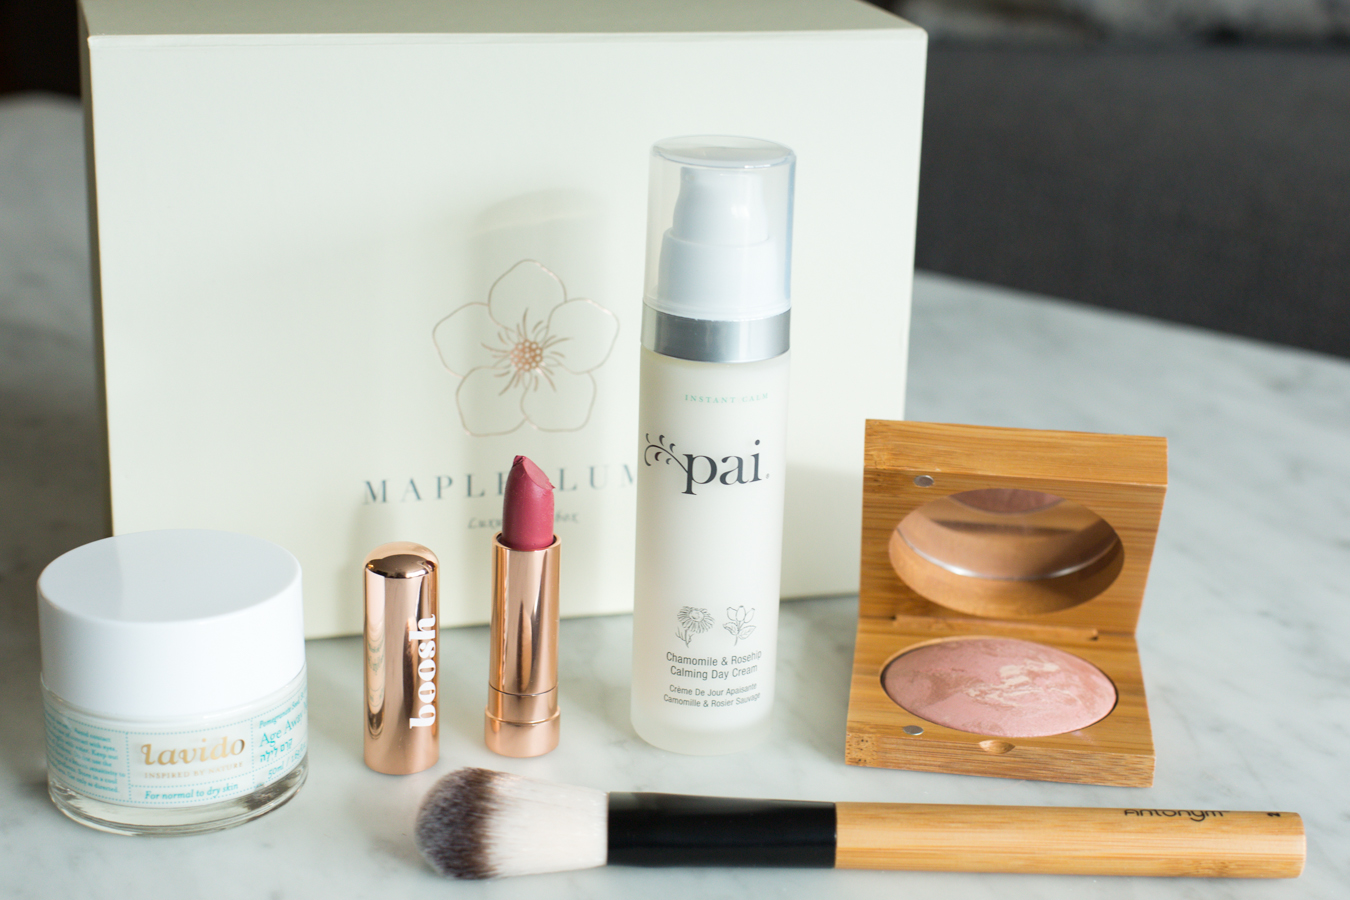 Mapleblume February box contents